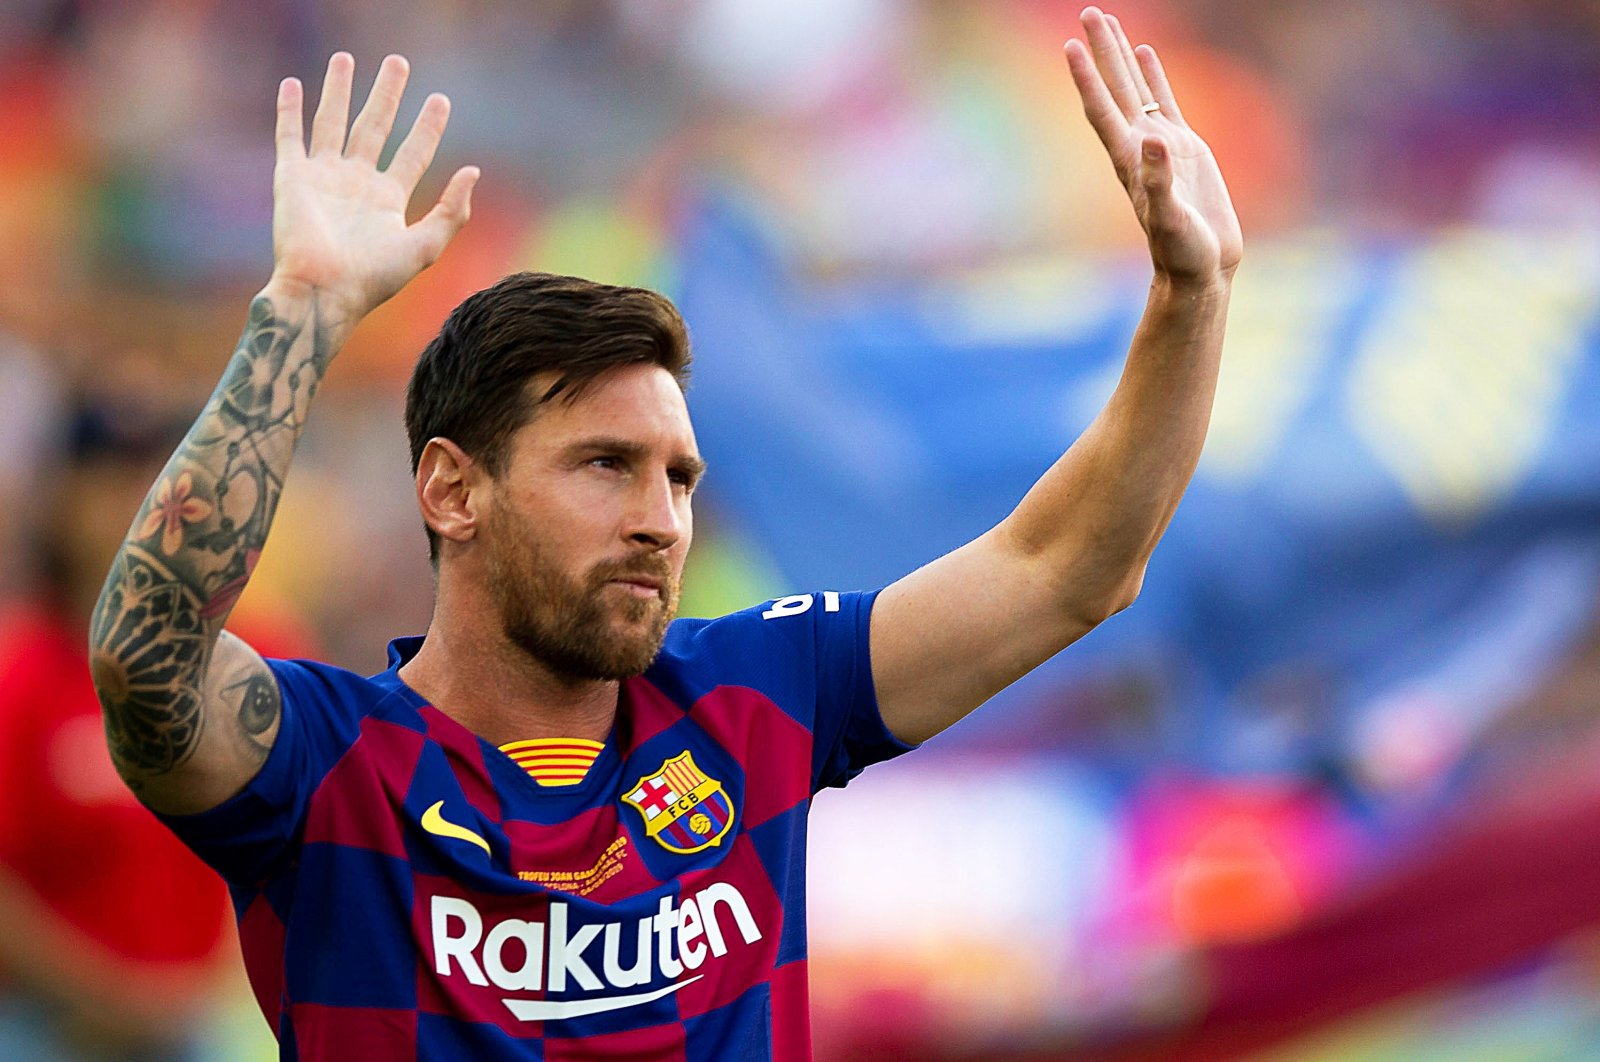 Barcelona's Lionel Messi greets fans prior to a friendly match against Arsenal in Barcelona, Spain, Aug. 4, 2019. (EPA Photo)